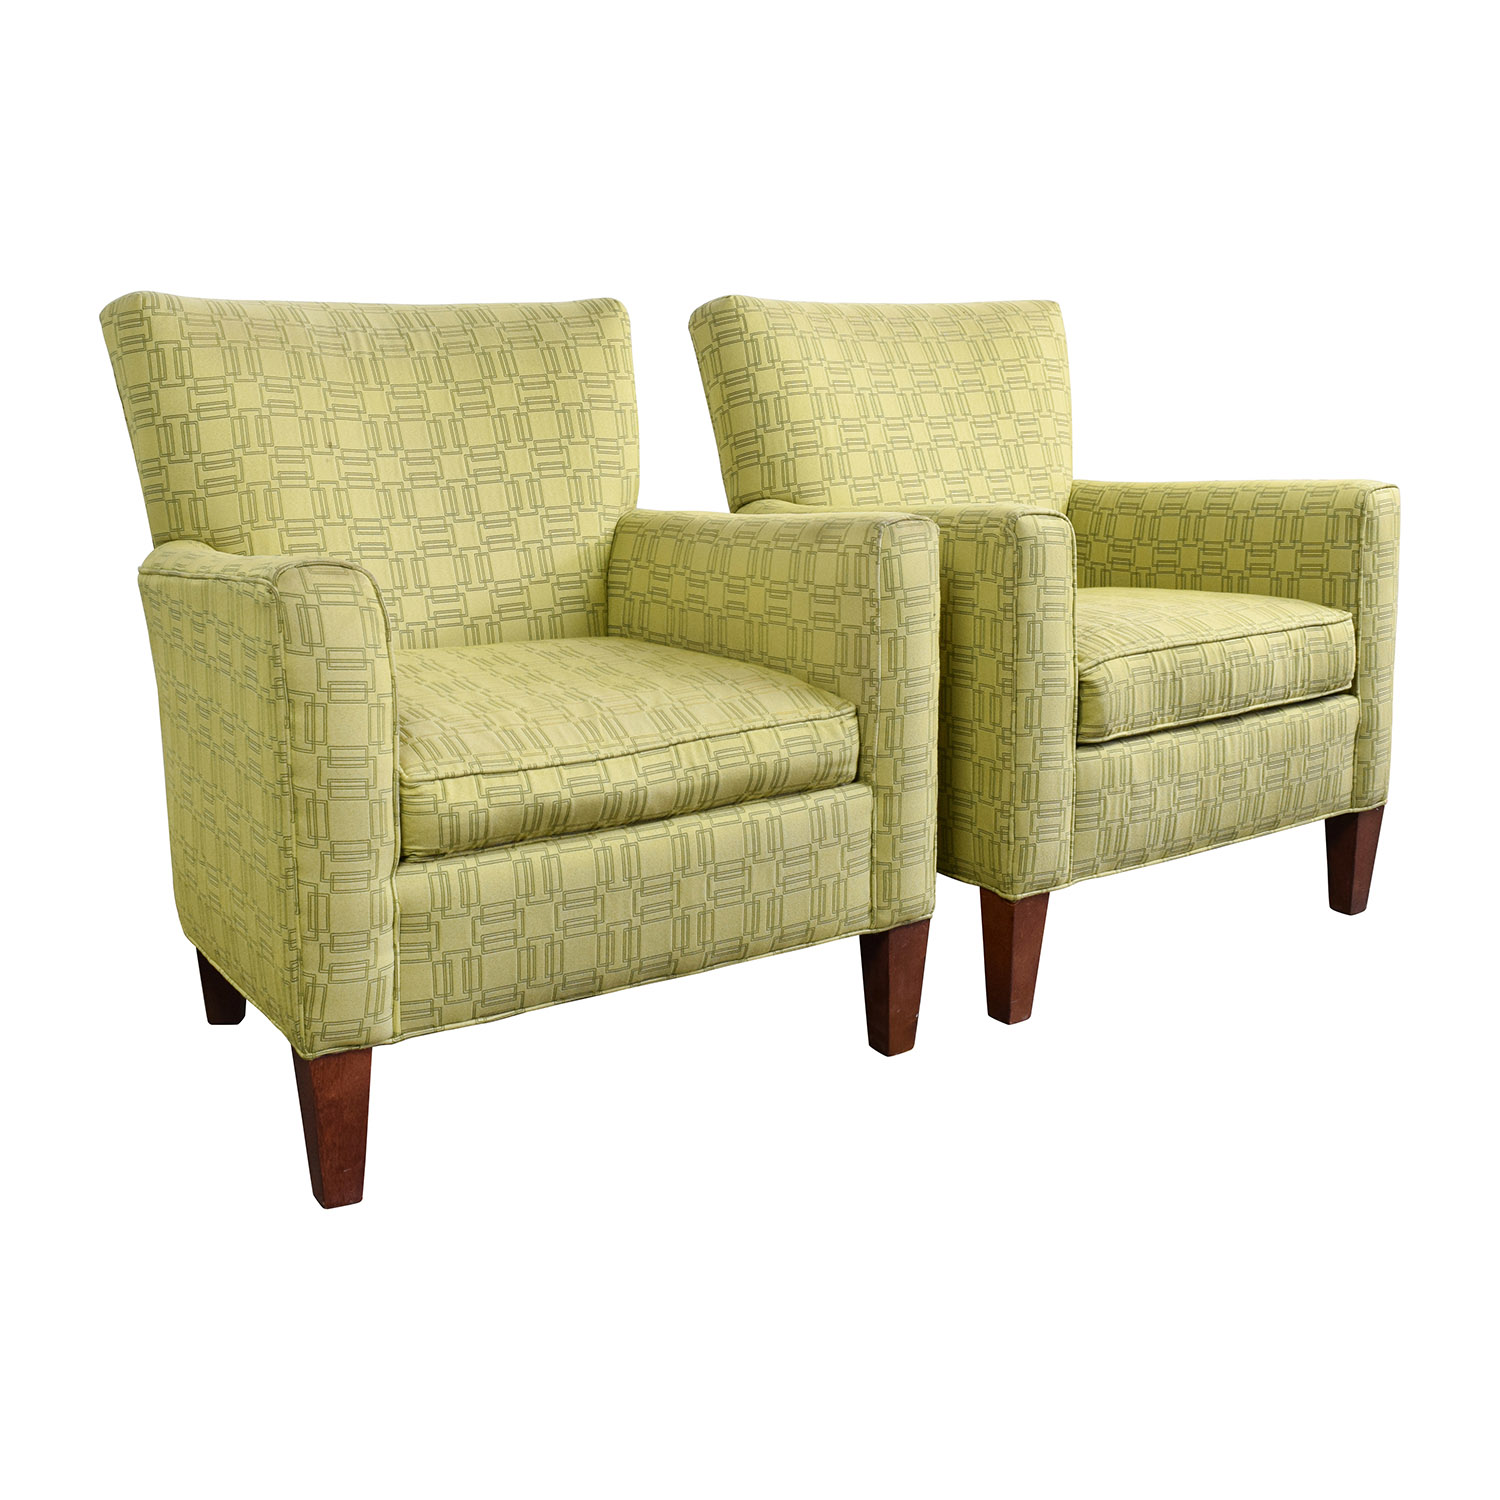 90% OFF Ethan Allen Ethan Allen Green Upholstered Accent Chairs